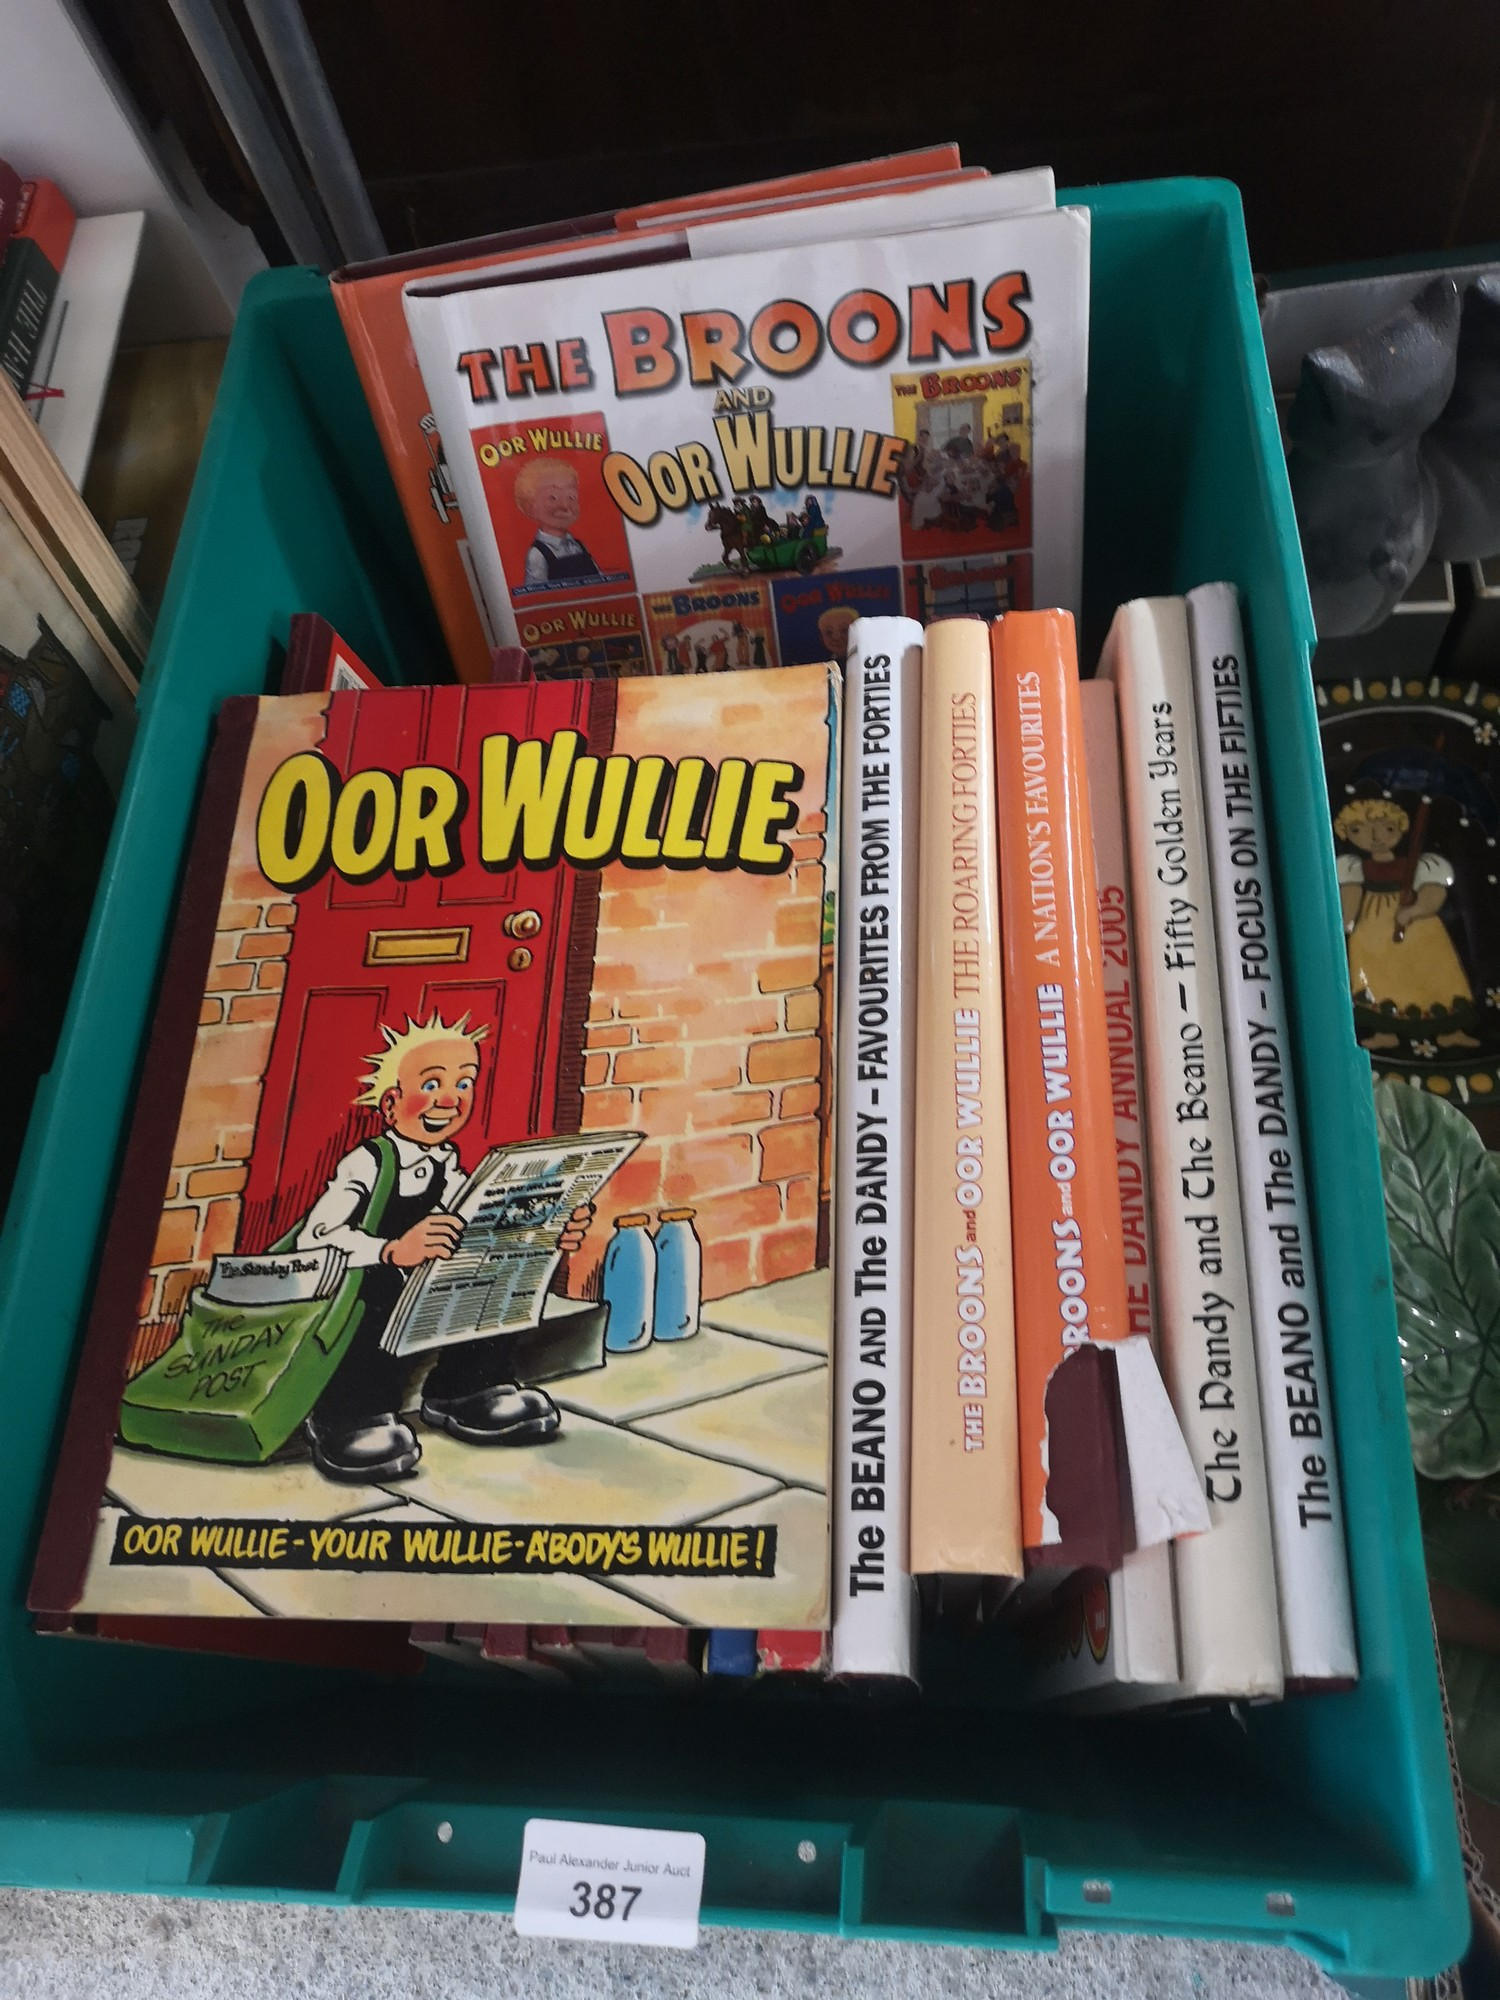 Box of orr wullie annual s and the broons etc.